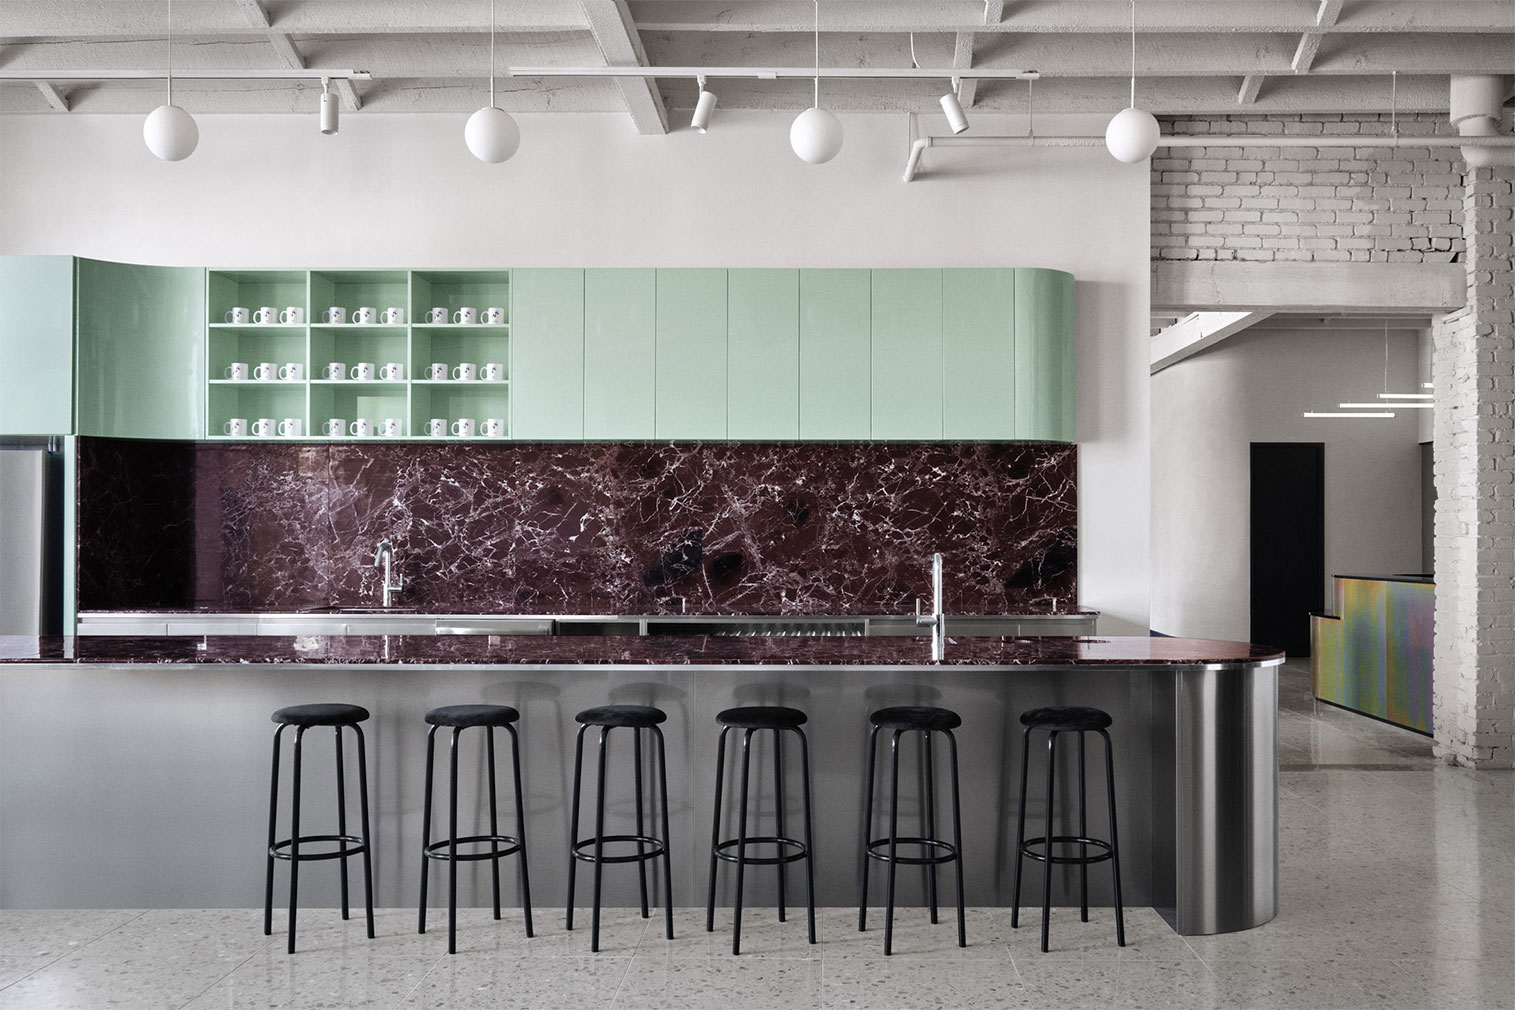 Burgundy features again in the kitchen, this time in the veined backsplash, contrasted by mint green cupboards